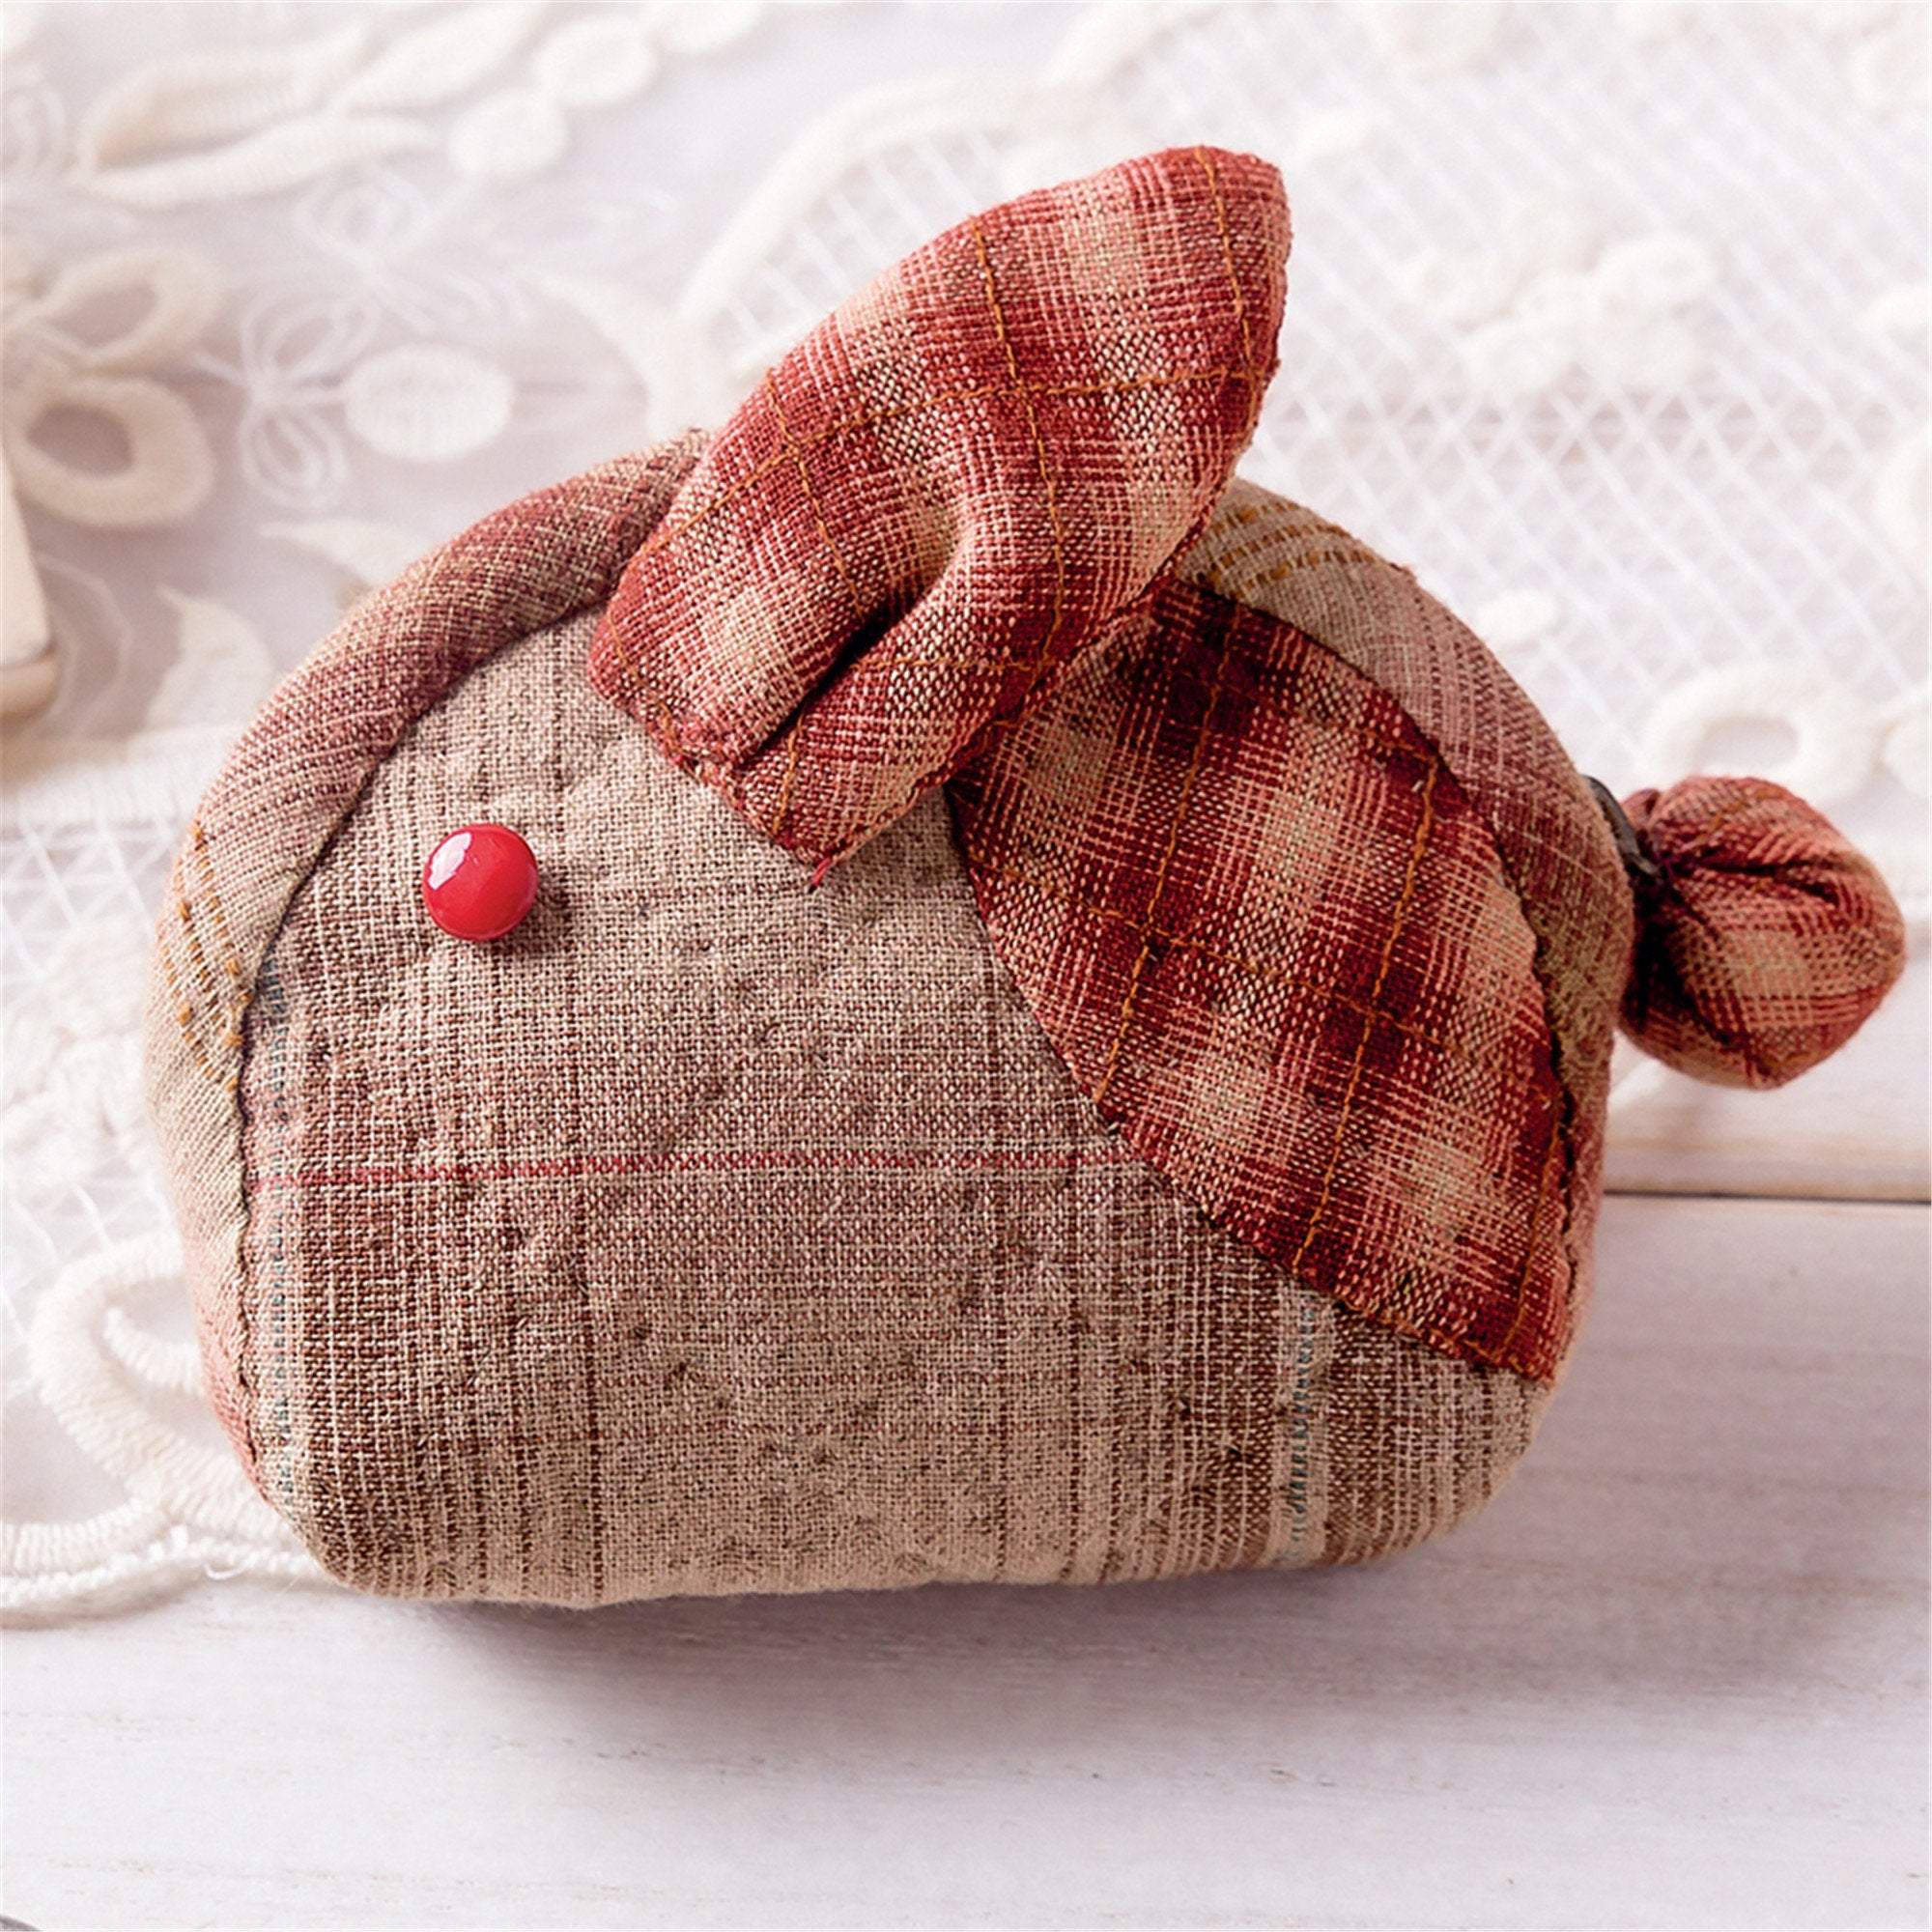 Coin Purse Making Kit - Red Rabbit Pattern - Sewing material kit - Oh My Crafts